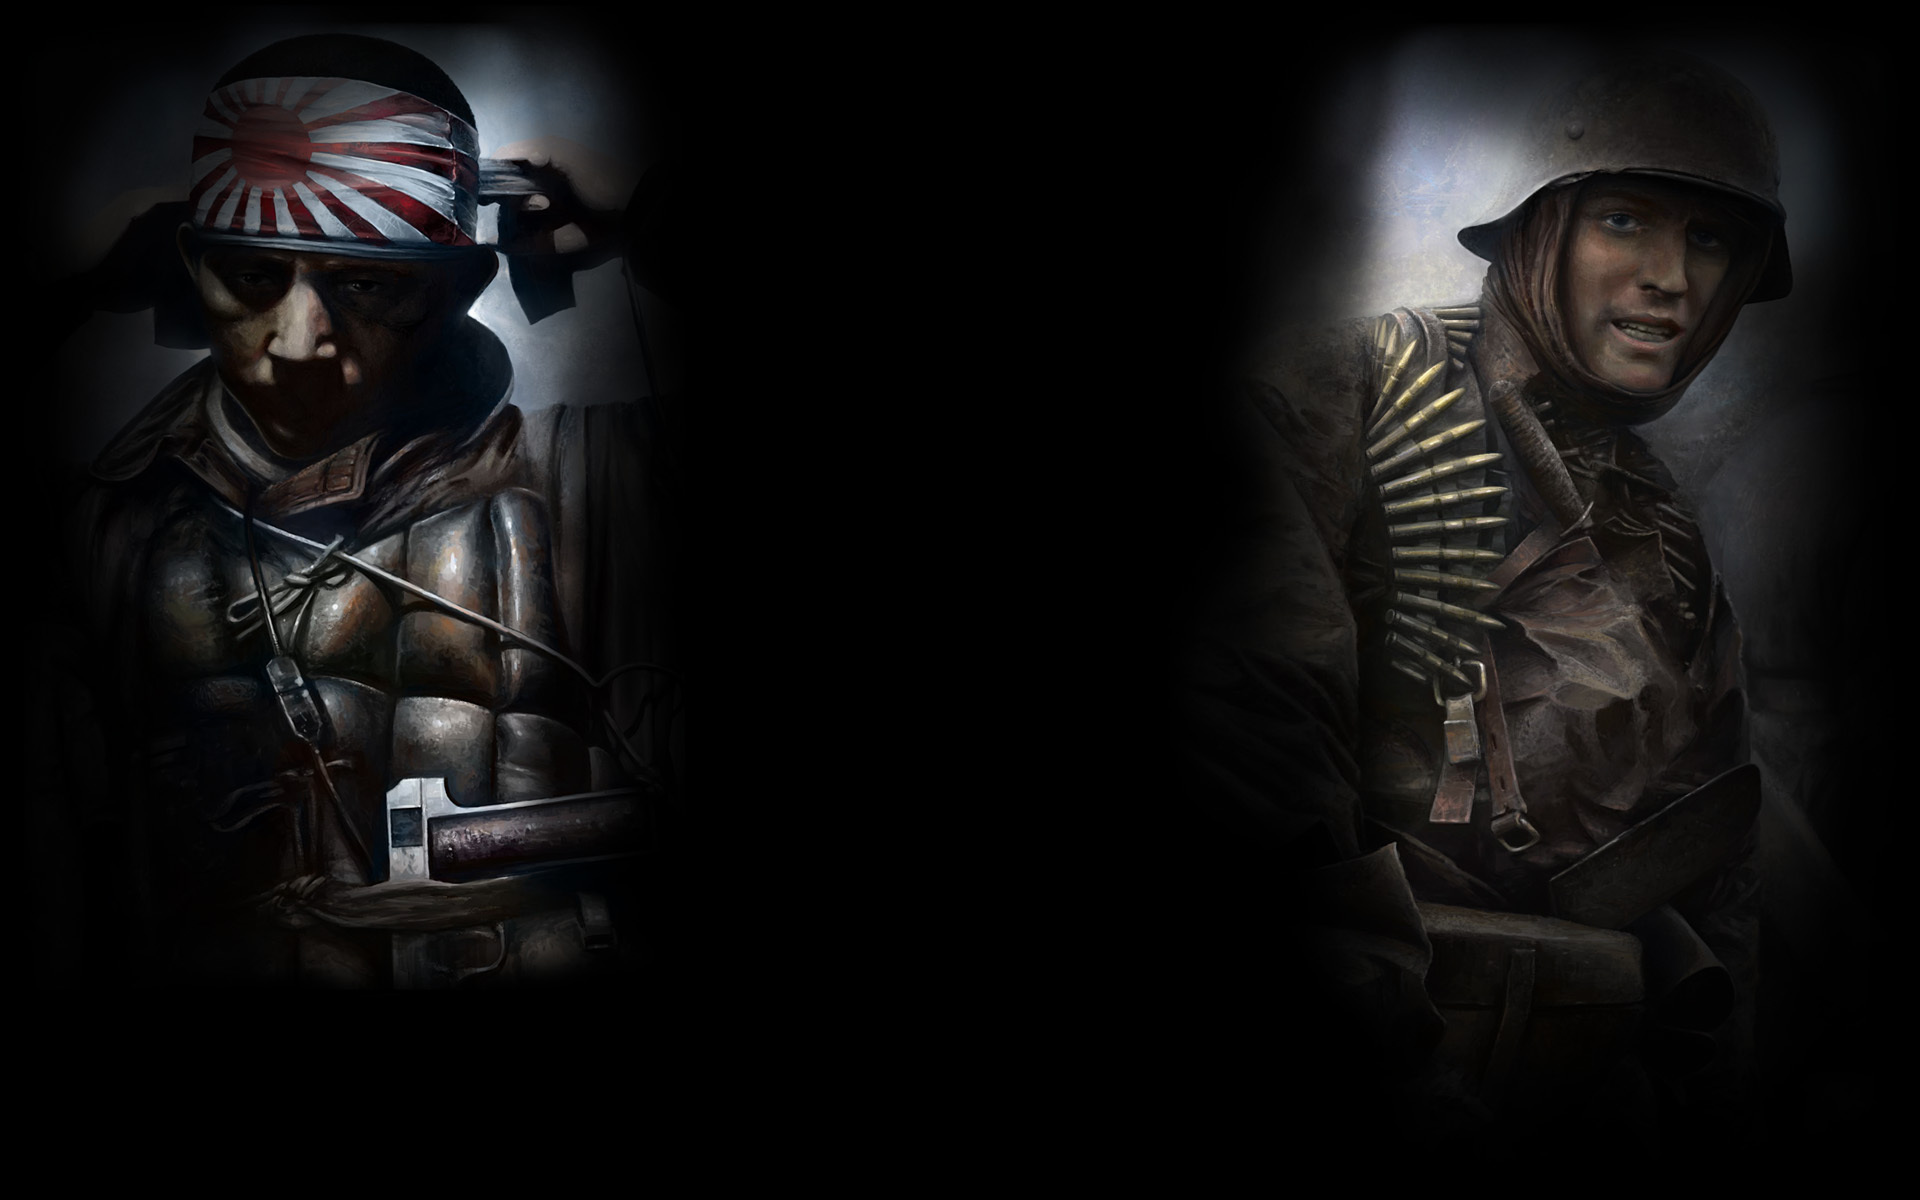 Metal Gear Solid Iphone Wallpaper Hearts Of Iron Iii Full Hd Wallpaper And Background Image